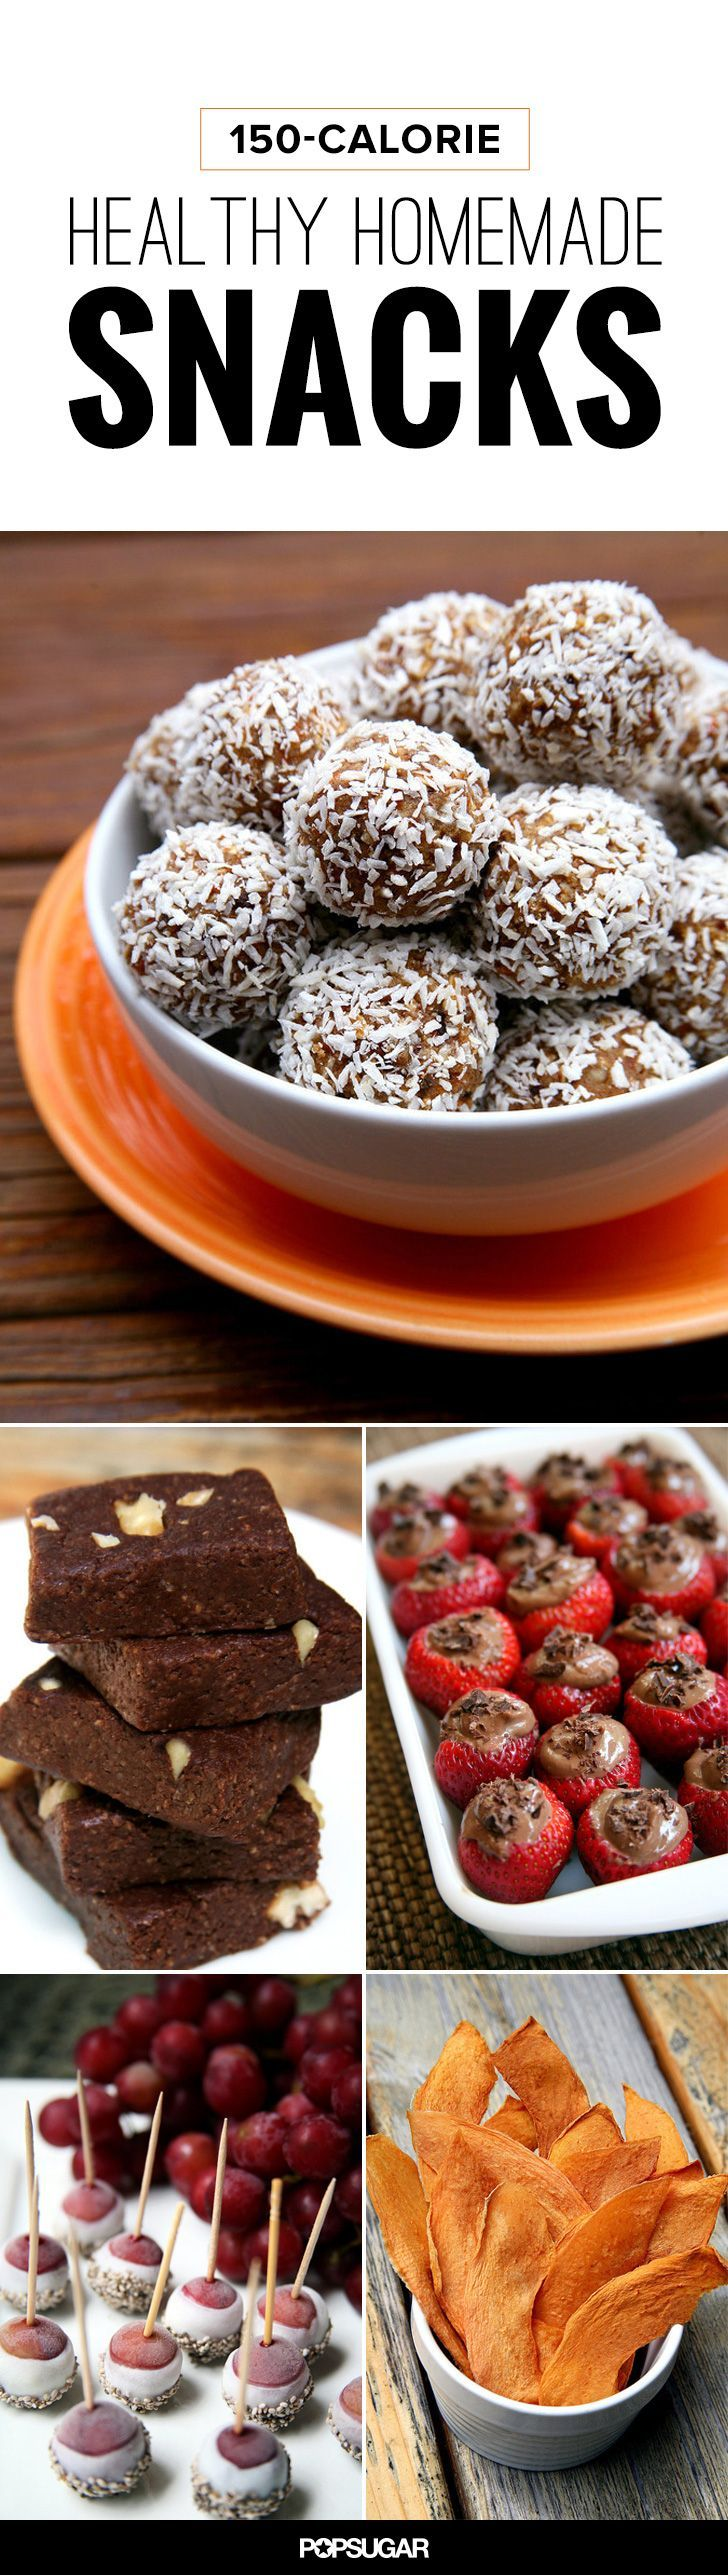 There's so much more to snacking than cheese and crackers! All 64 delicious options for your calorie budget.